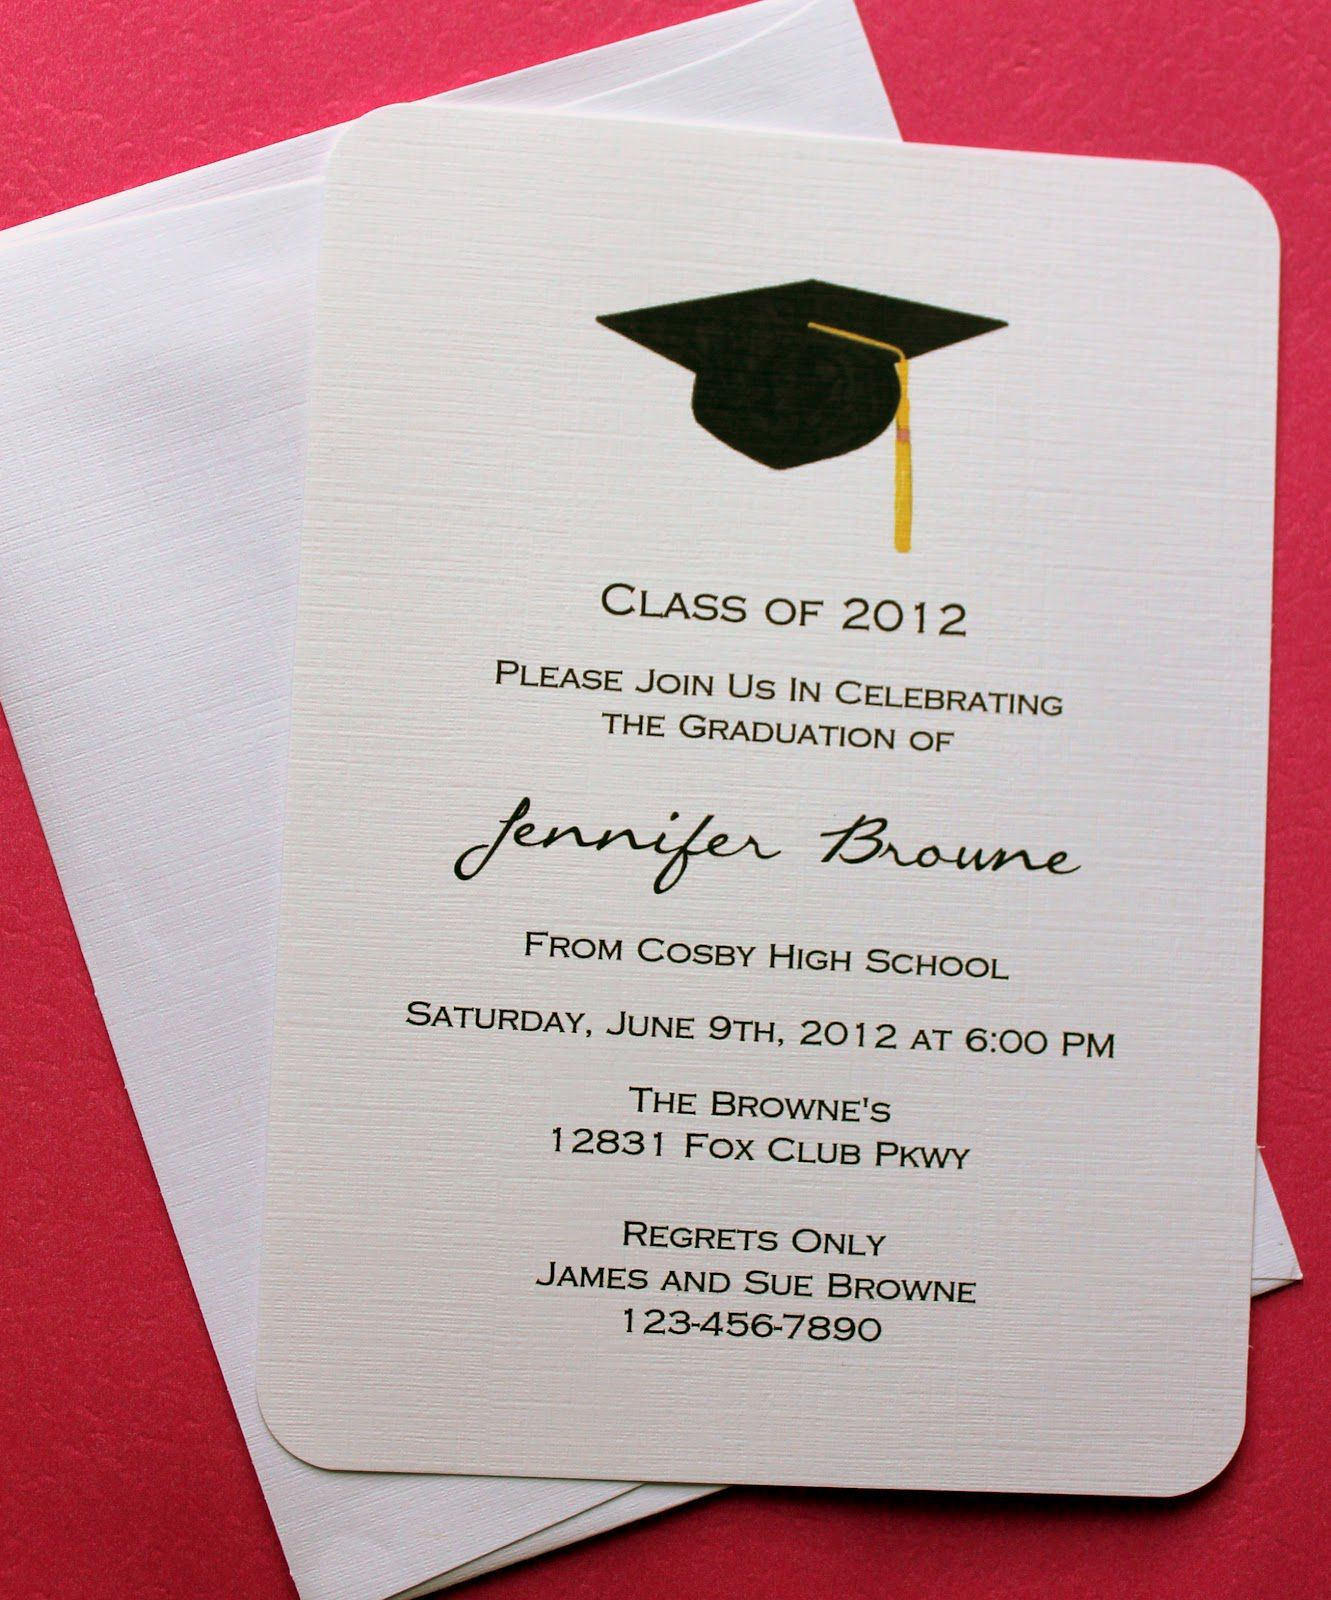 006 Archaicawful Free Graduation Announcement Template High Def  Invitation Microsoft Word Printable KindergartenFull